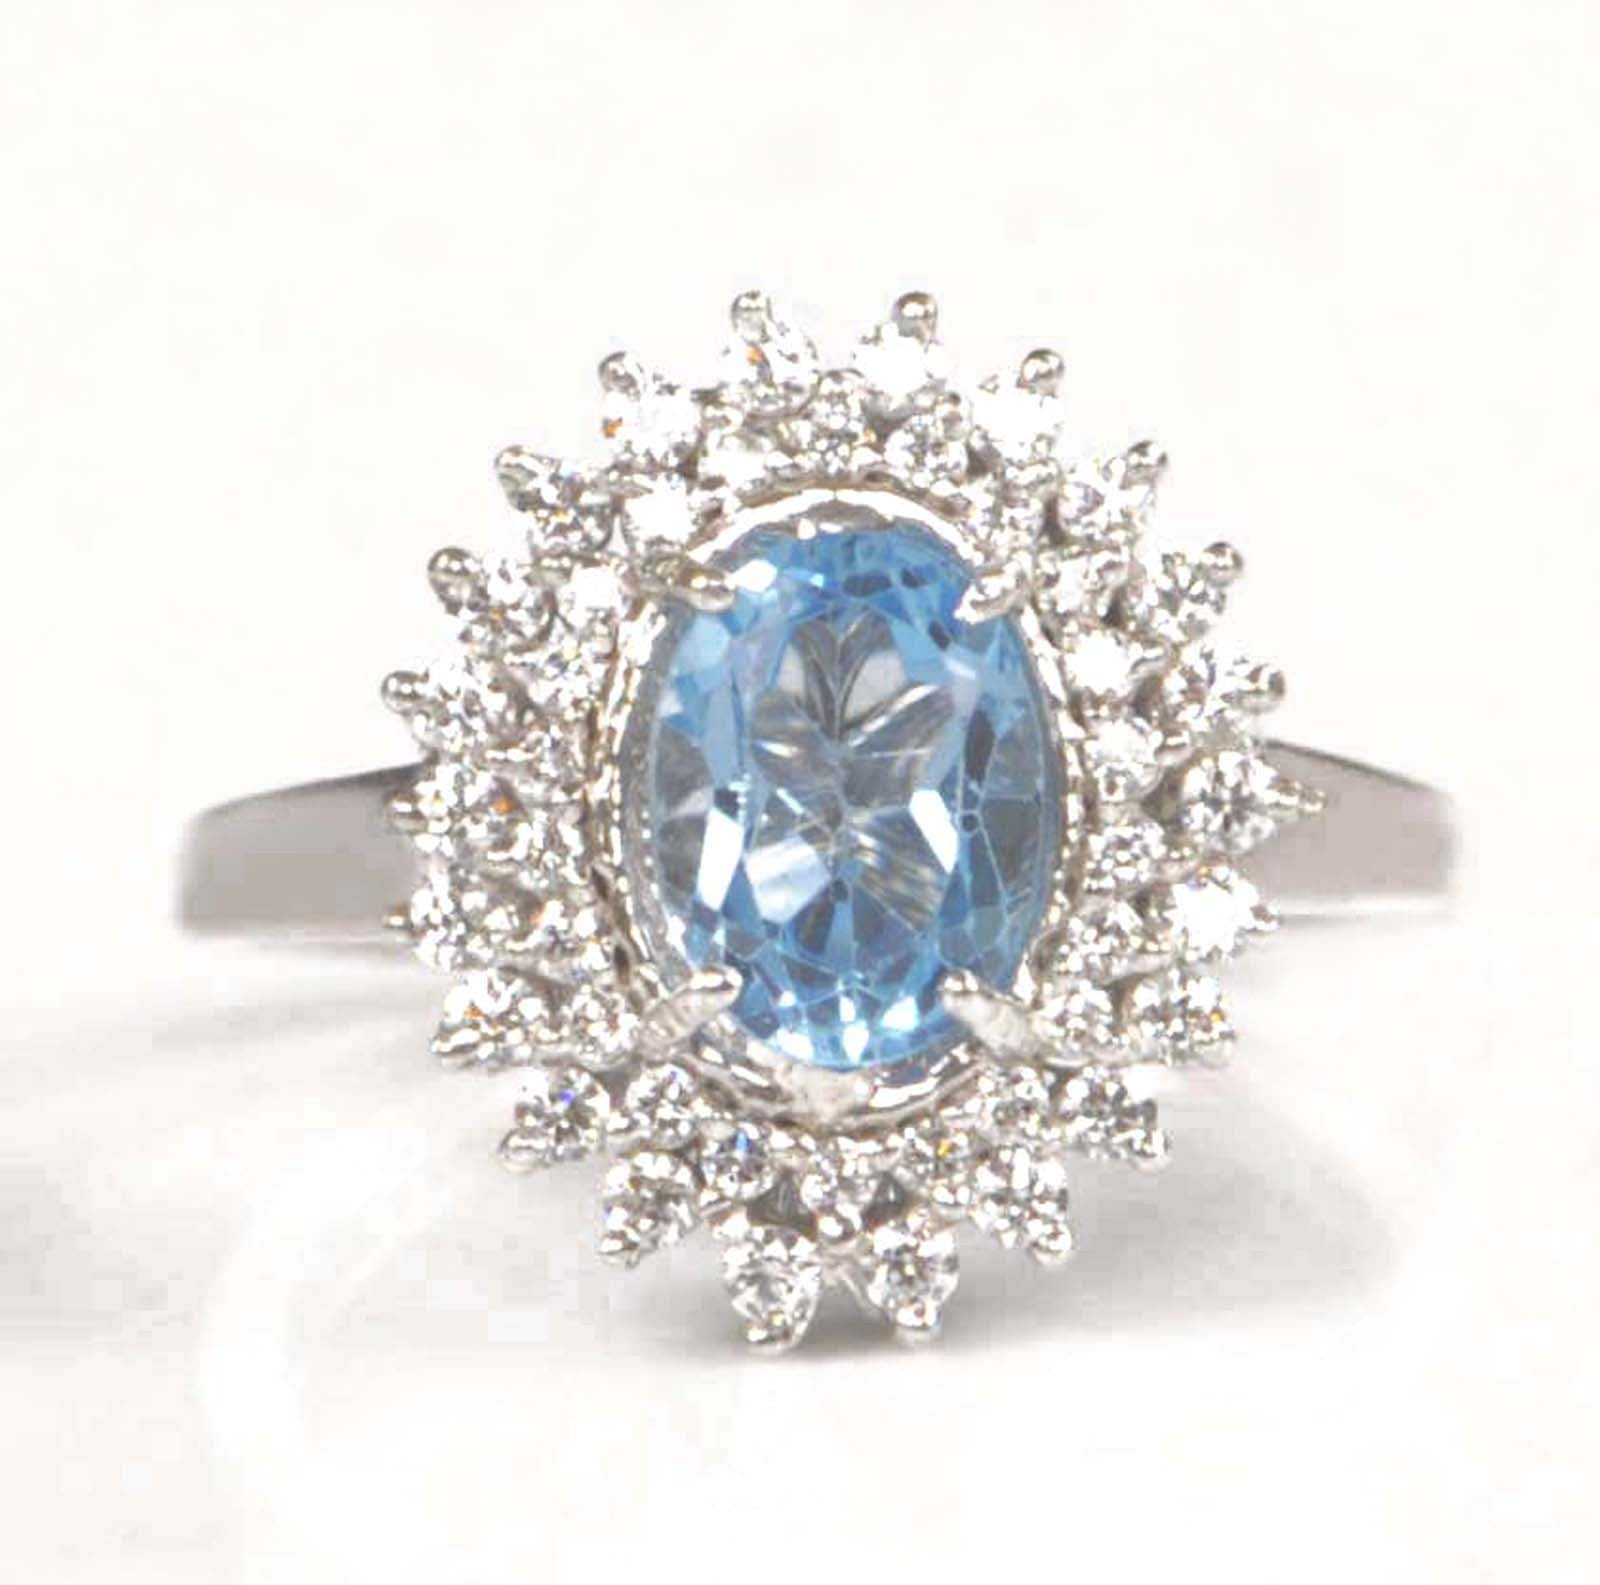 2.45 CARATS OVAL SHAPE 14KT SOLID GOLD REAL NATURAL BLUE TOPAZ & EGL CERTIFIED DIAMOND RING